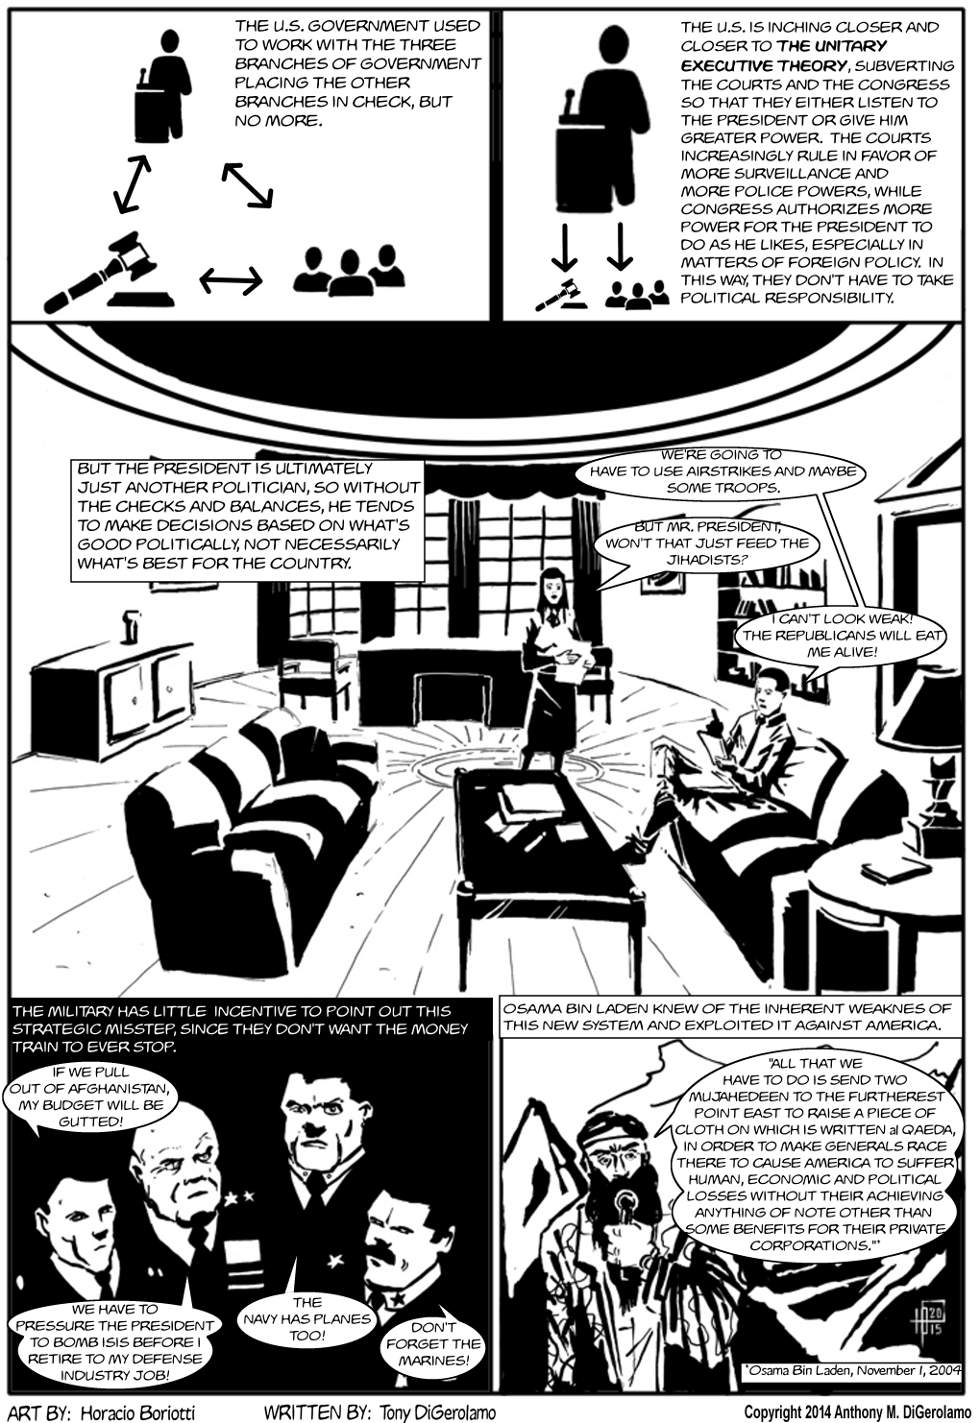 The Antiwar Comic:  The Inherent Weakness